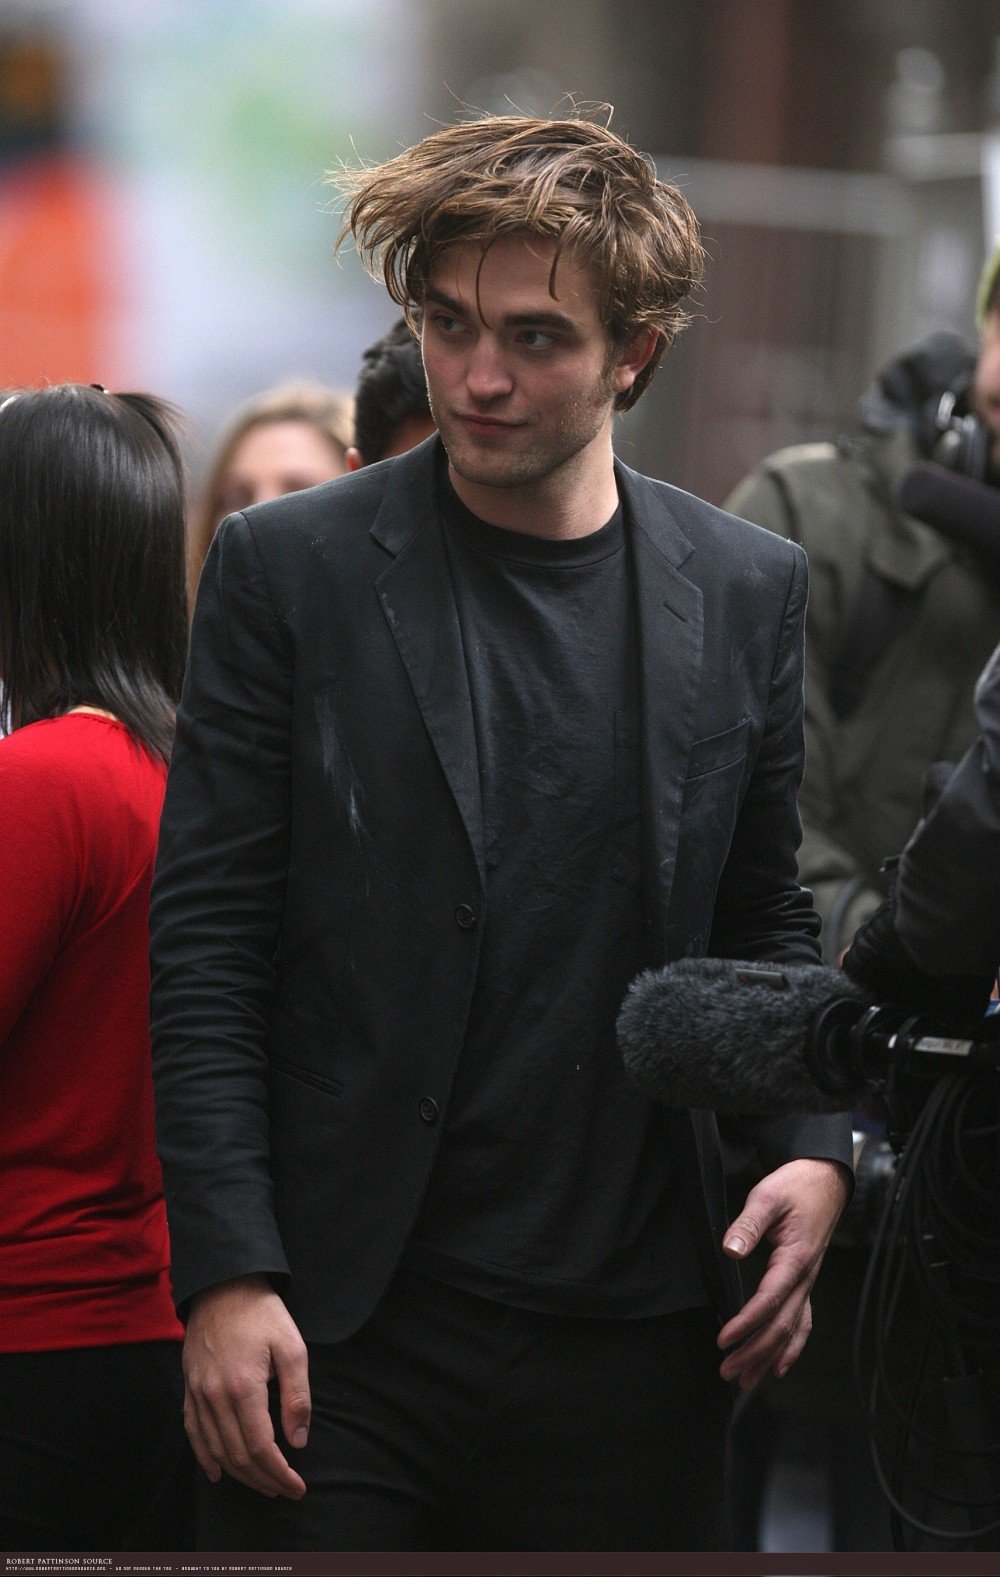 Robert Pattinson and Tyra Banks film scenes on the streets of New York